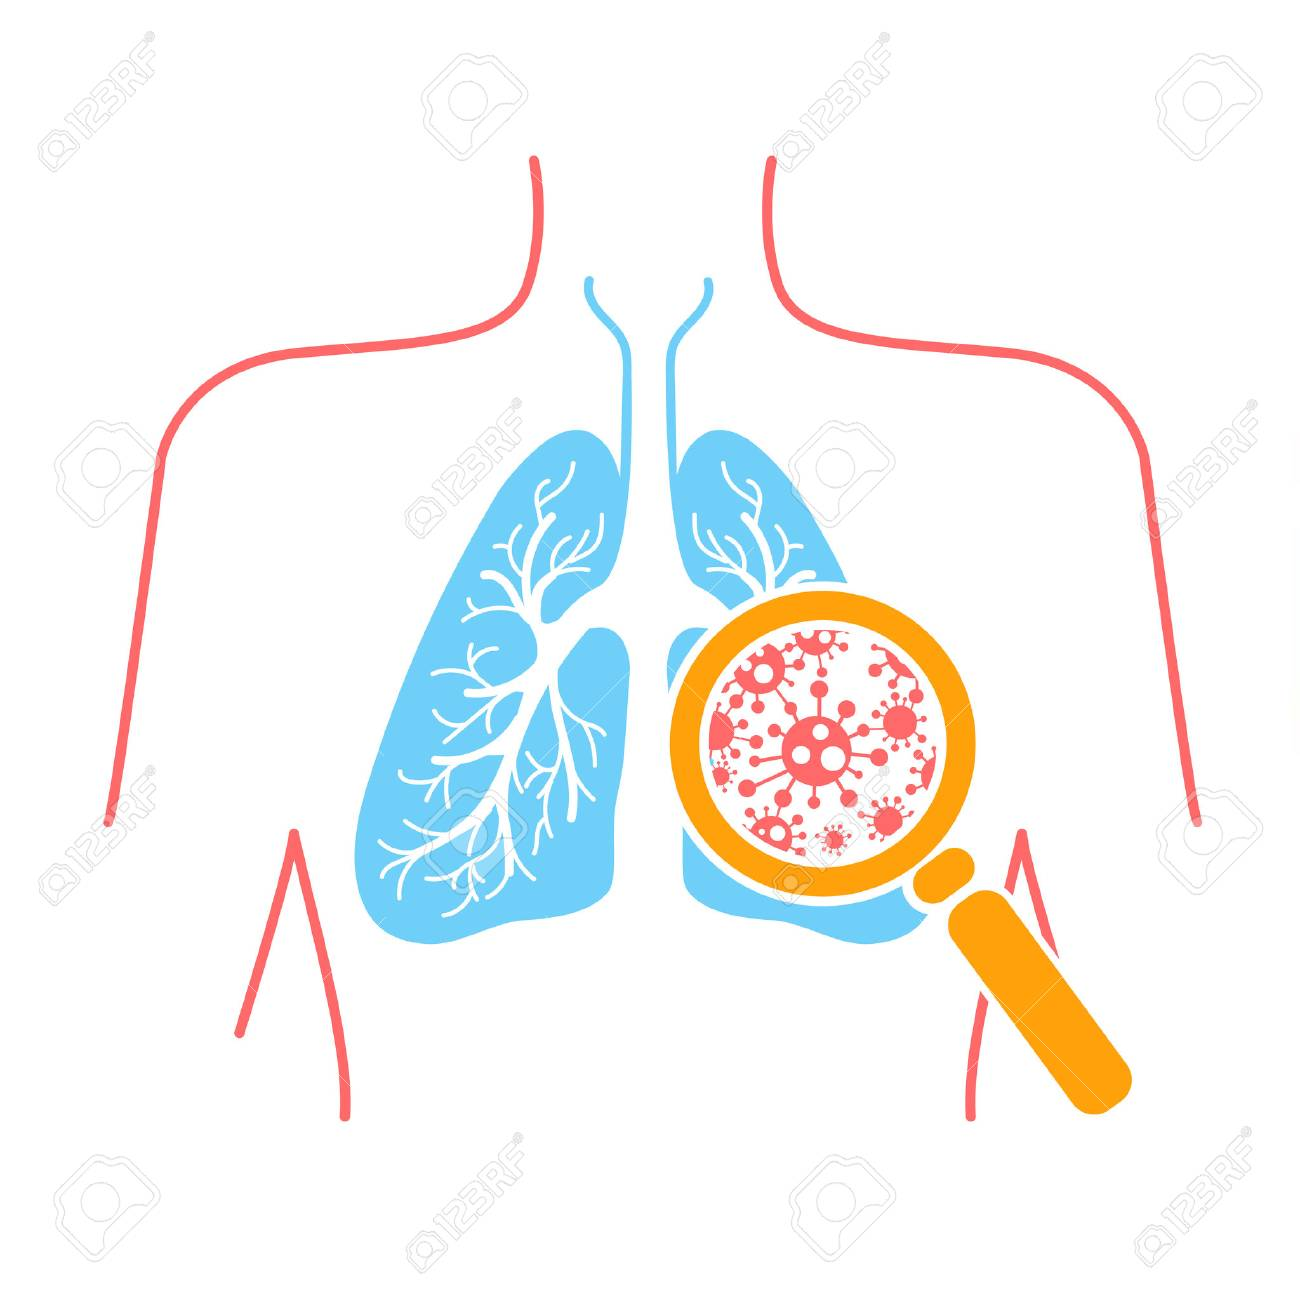 icon of lung disease, pneumonia, asthma, cancer in the form of lung anatomy and viruses causing disease. Icon in linear style - 89339060